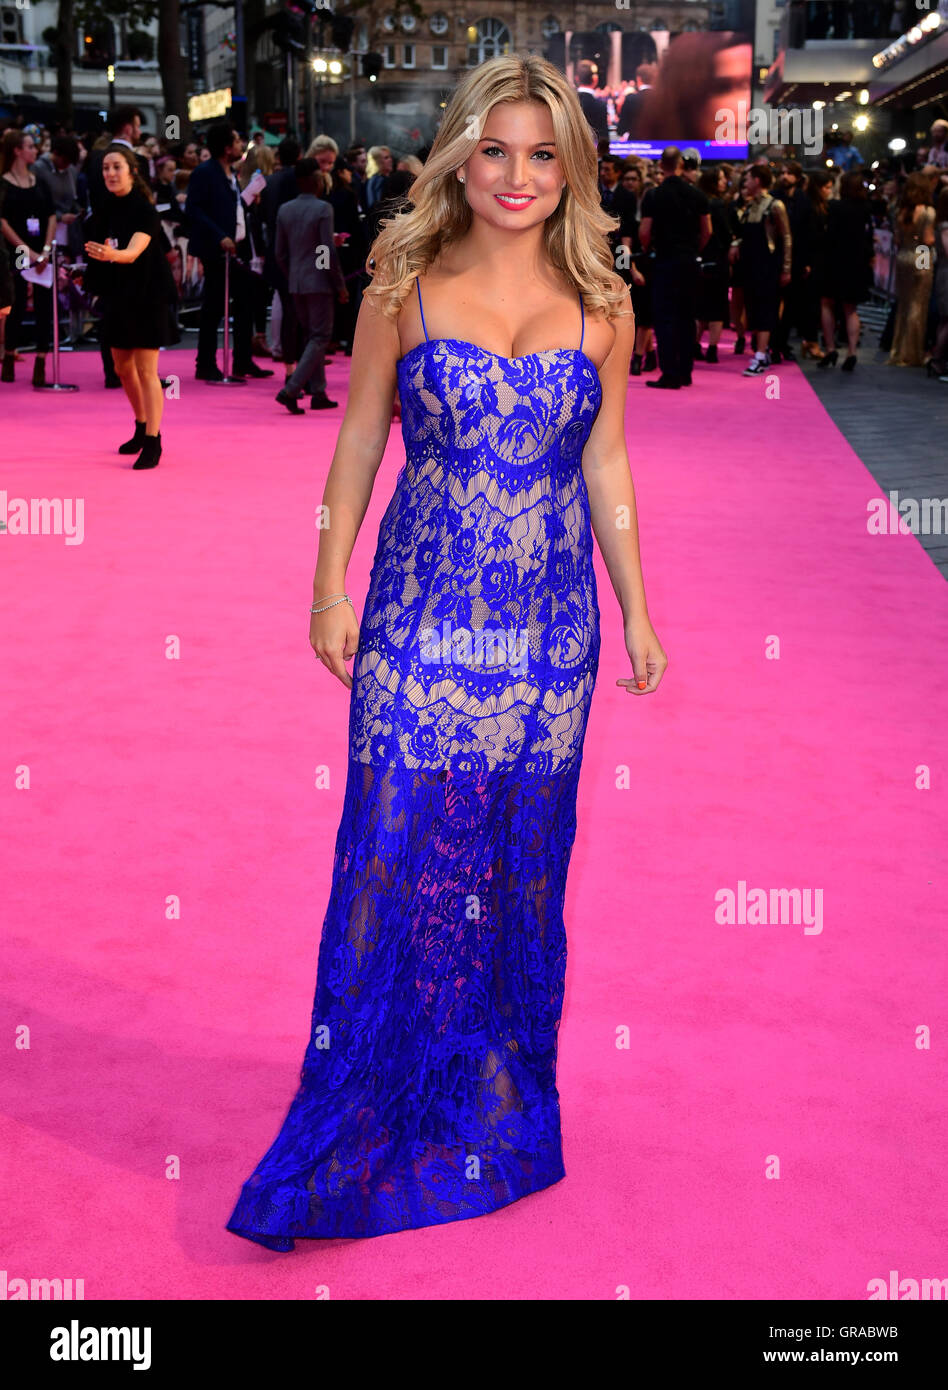 Zara Holland attending the world premiere of Bridget Jones's Baby at the Odeon cinema, Leicester Square, London. Stock Photo